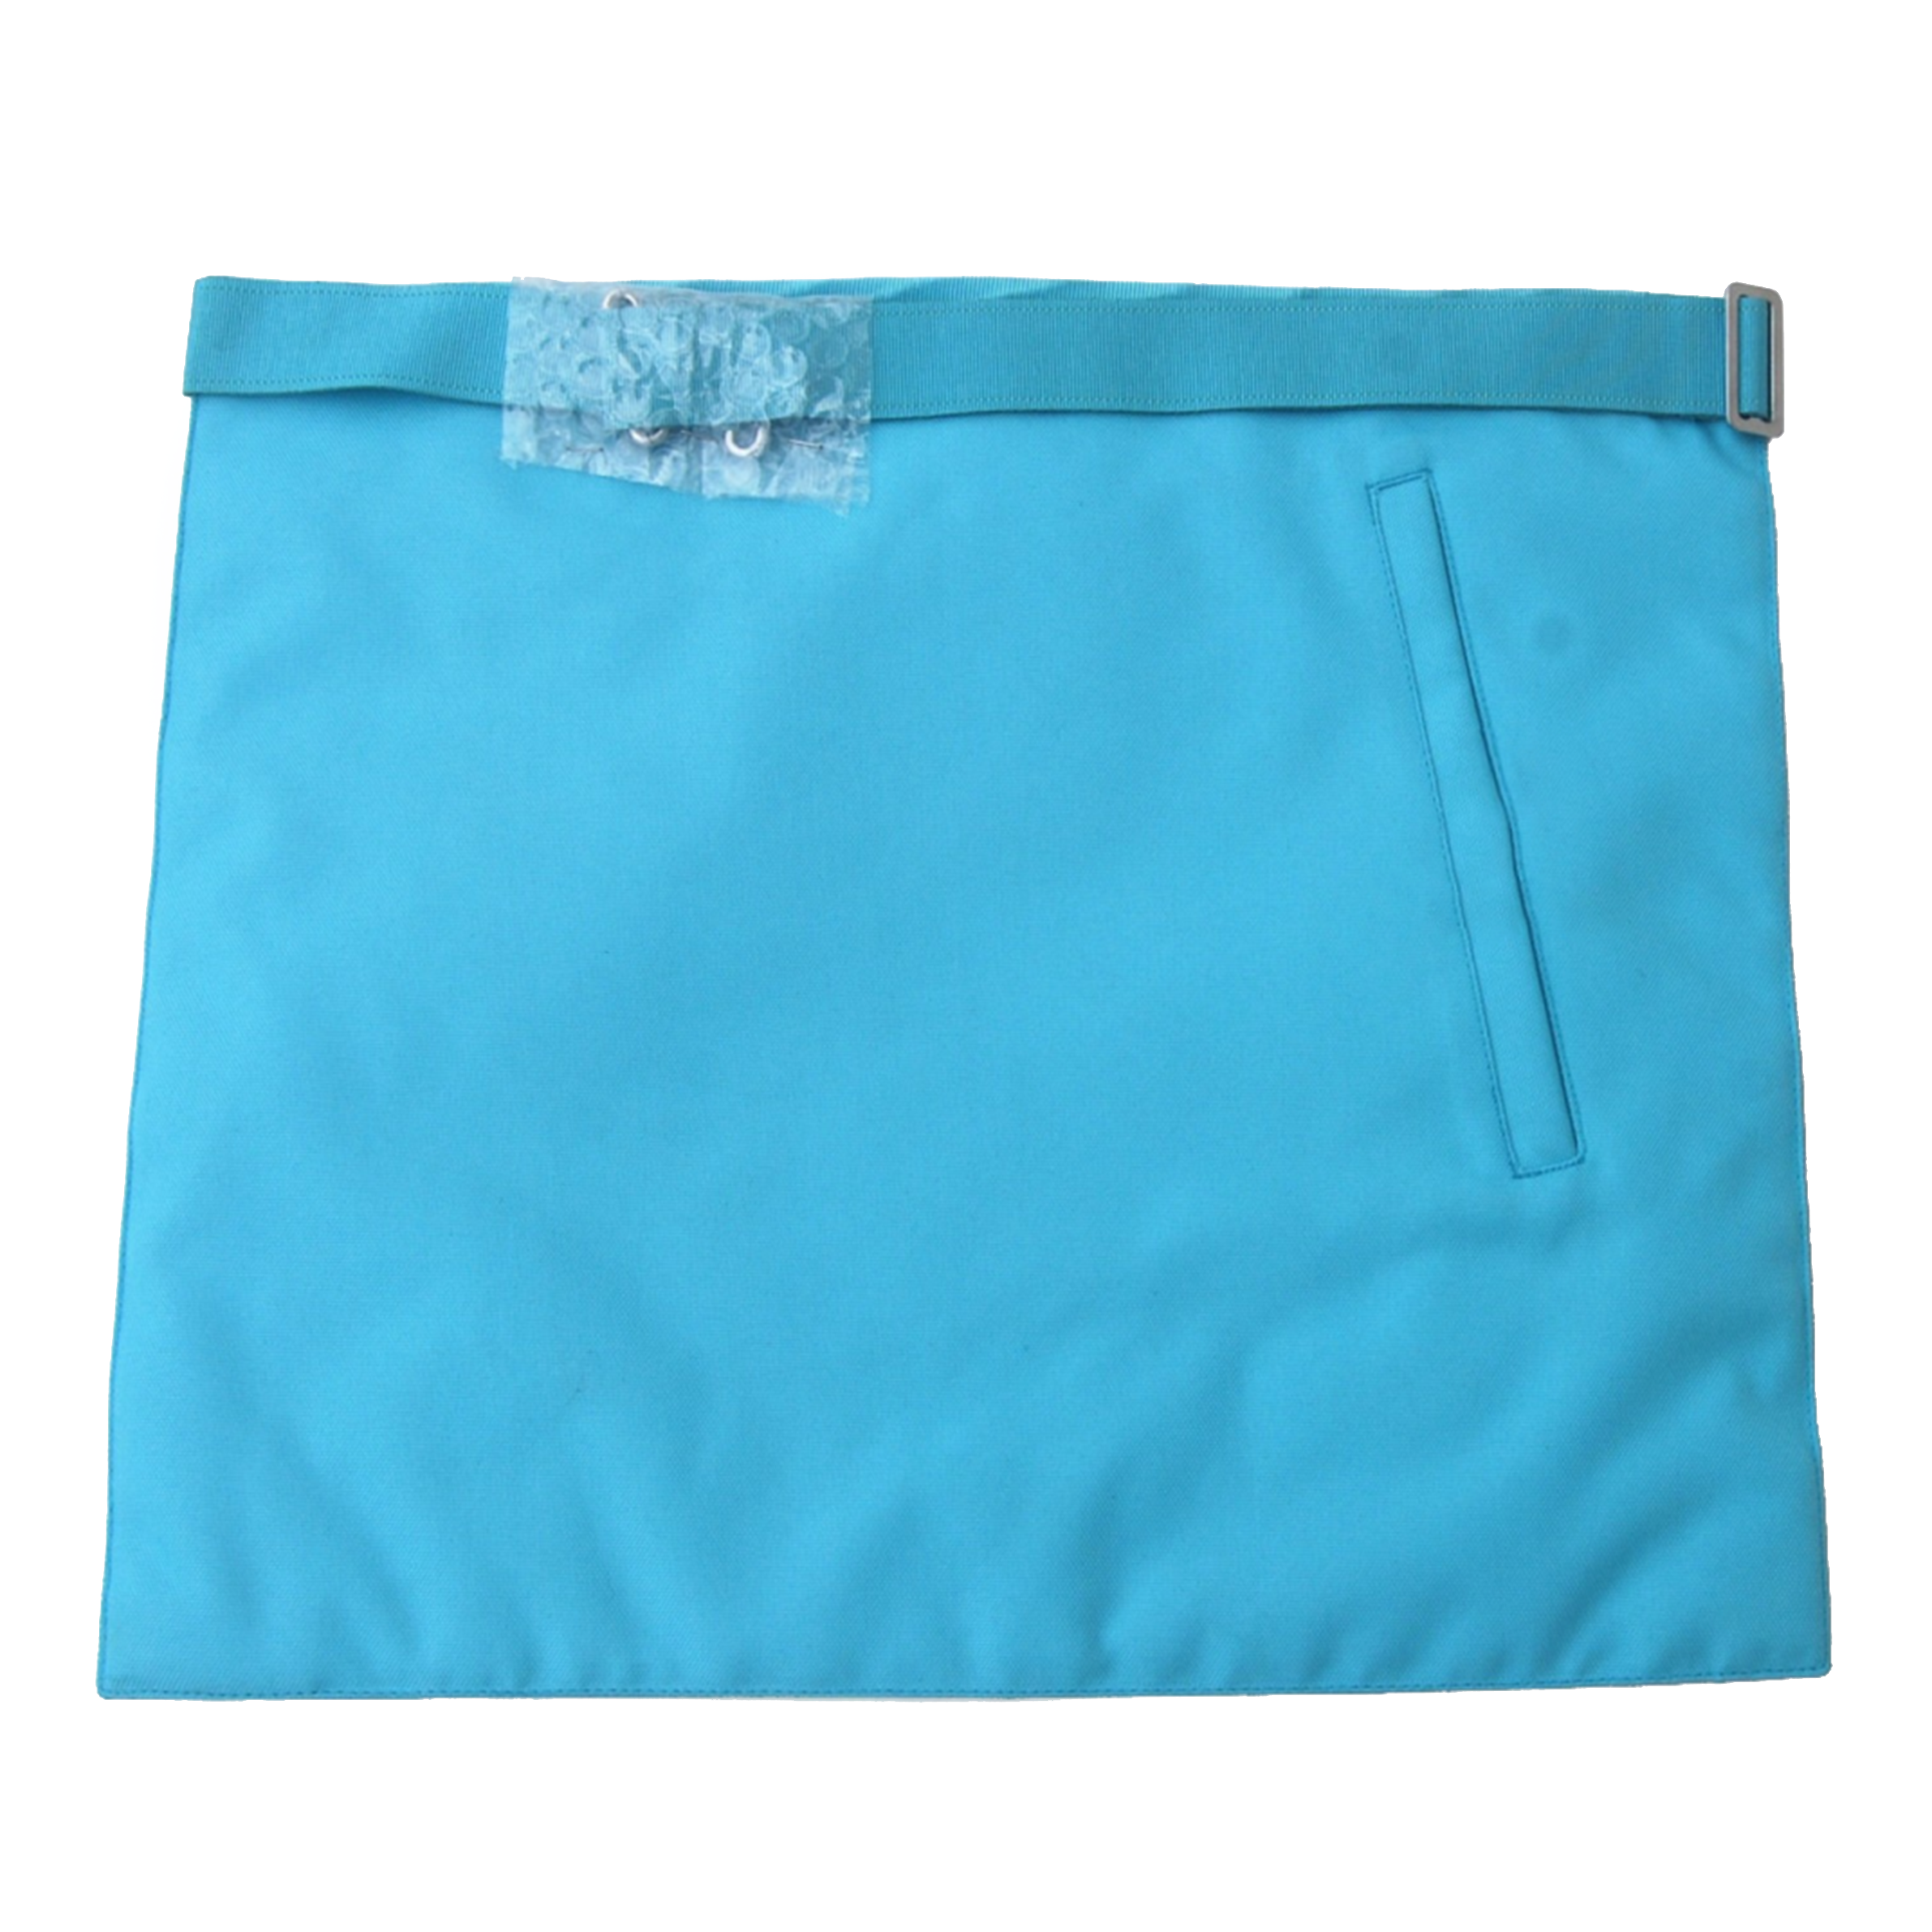 Master Mason Apron - Sky Blue - Bricks Masons